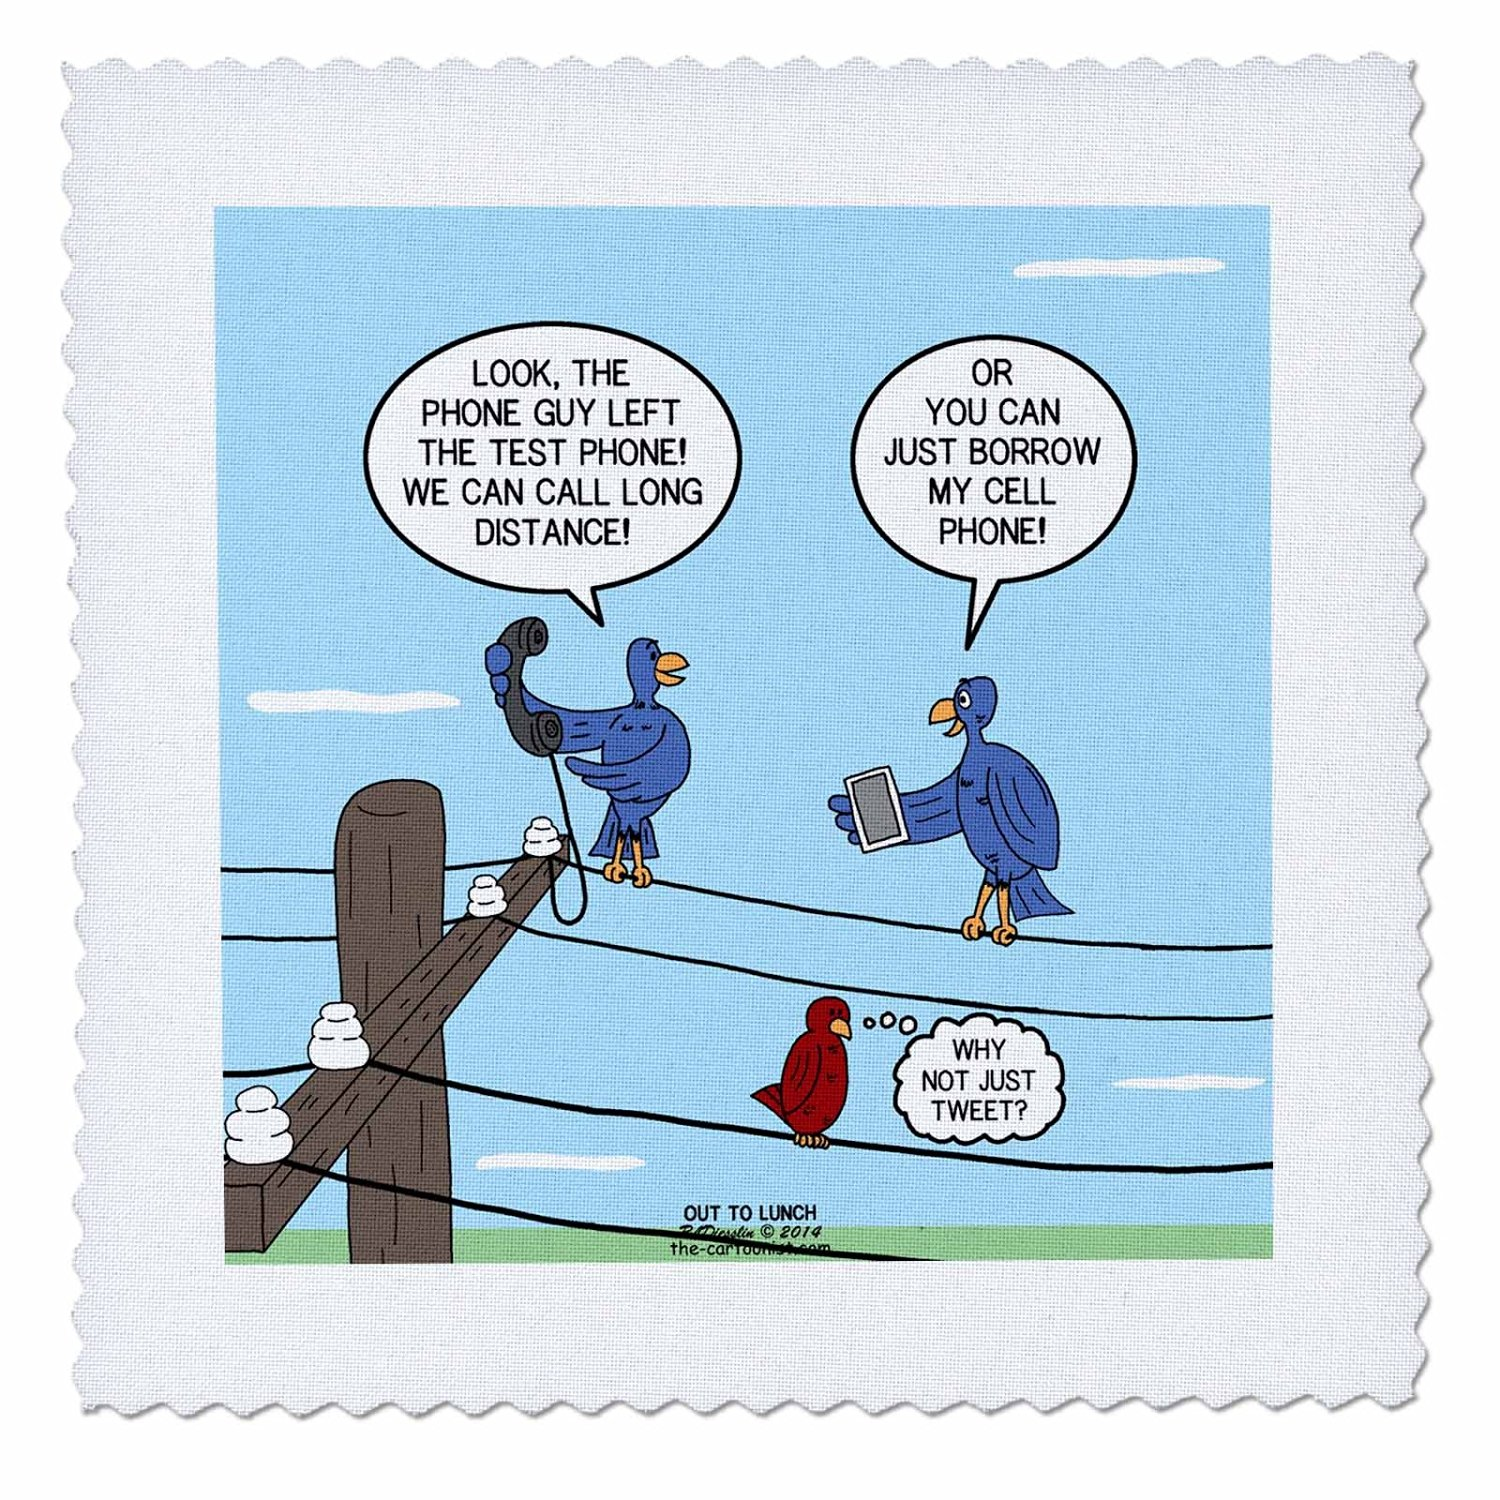 Buy Rich Diesslins Funny Out To Lunch Cartoons Bird Calls Land Line Vs Cell Phones Vs Tweeting 8x8 Iron On Heat Transfer For White Material Ht 221298 1 In Cheap Price